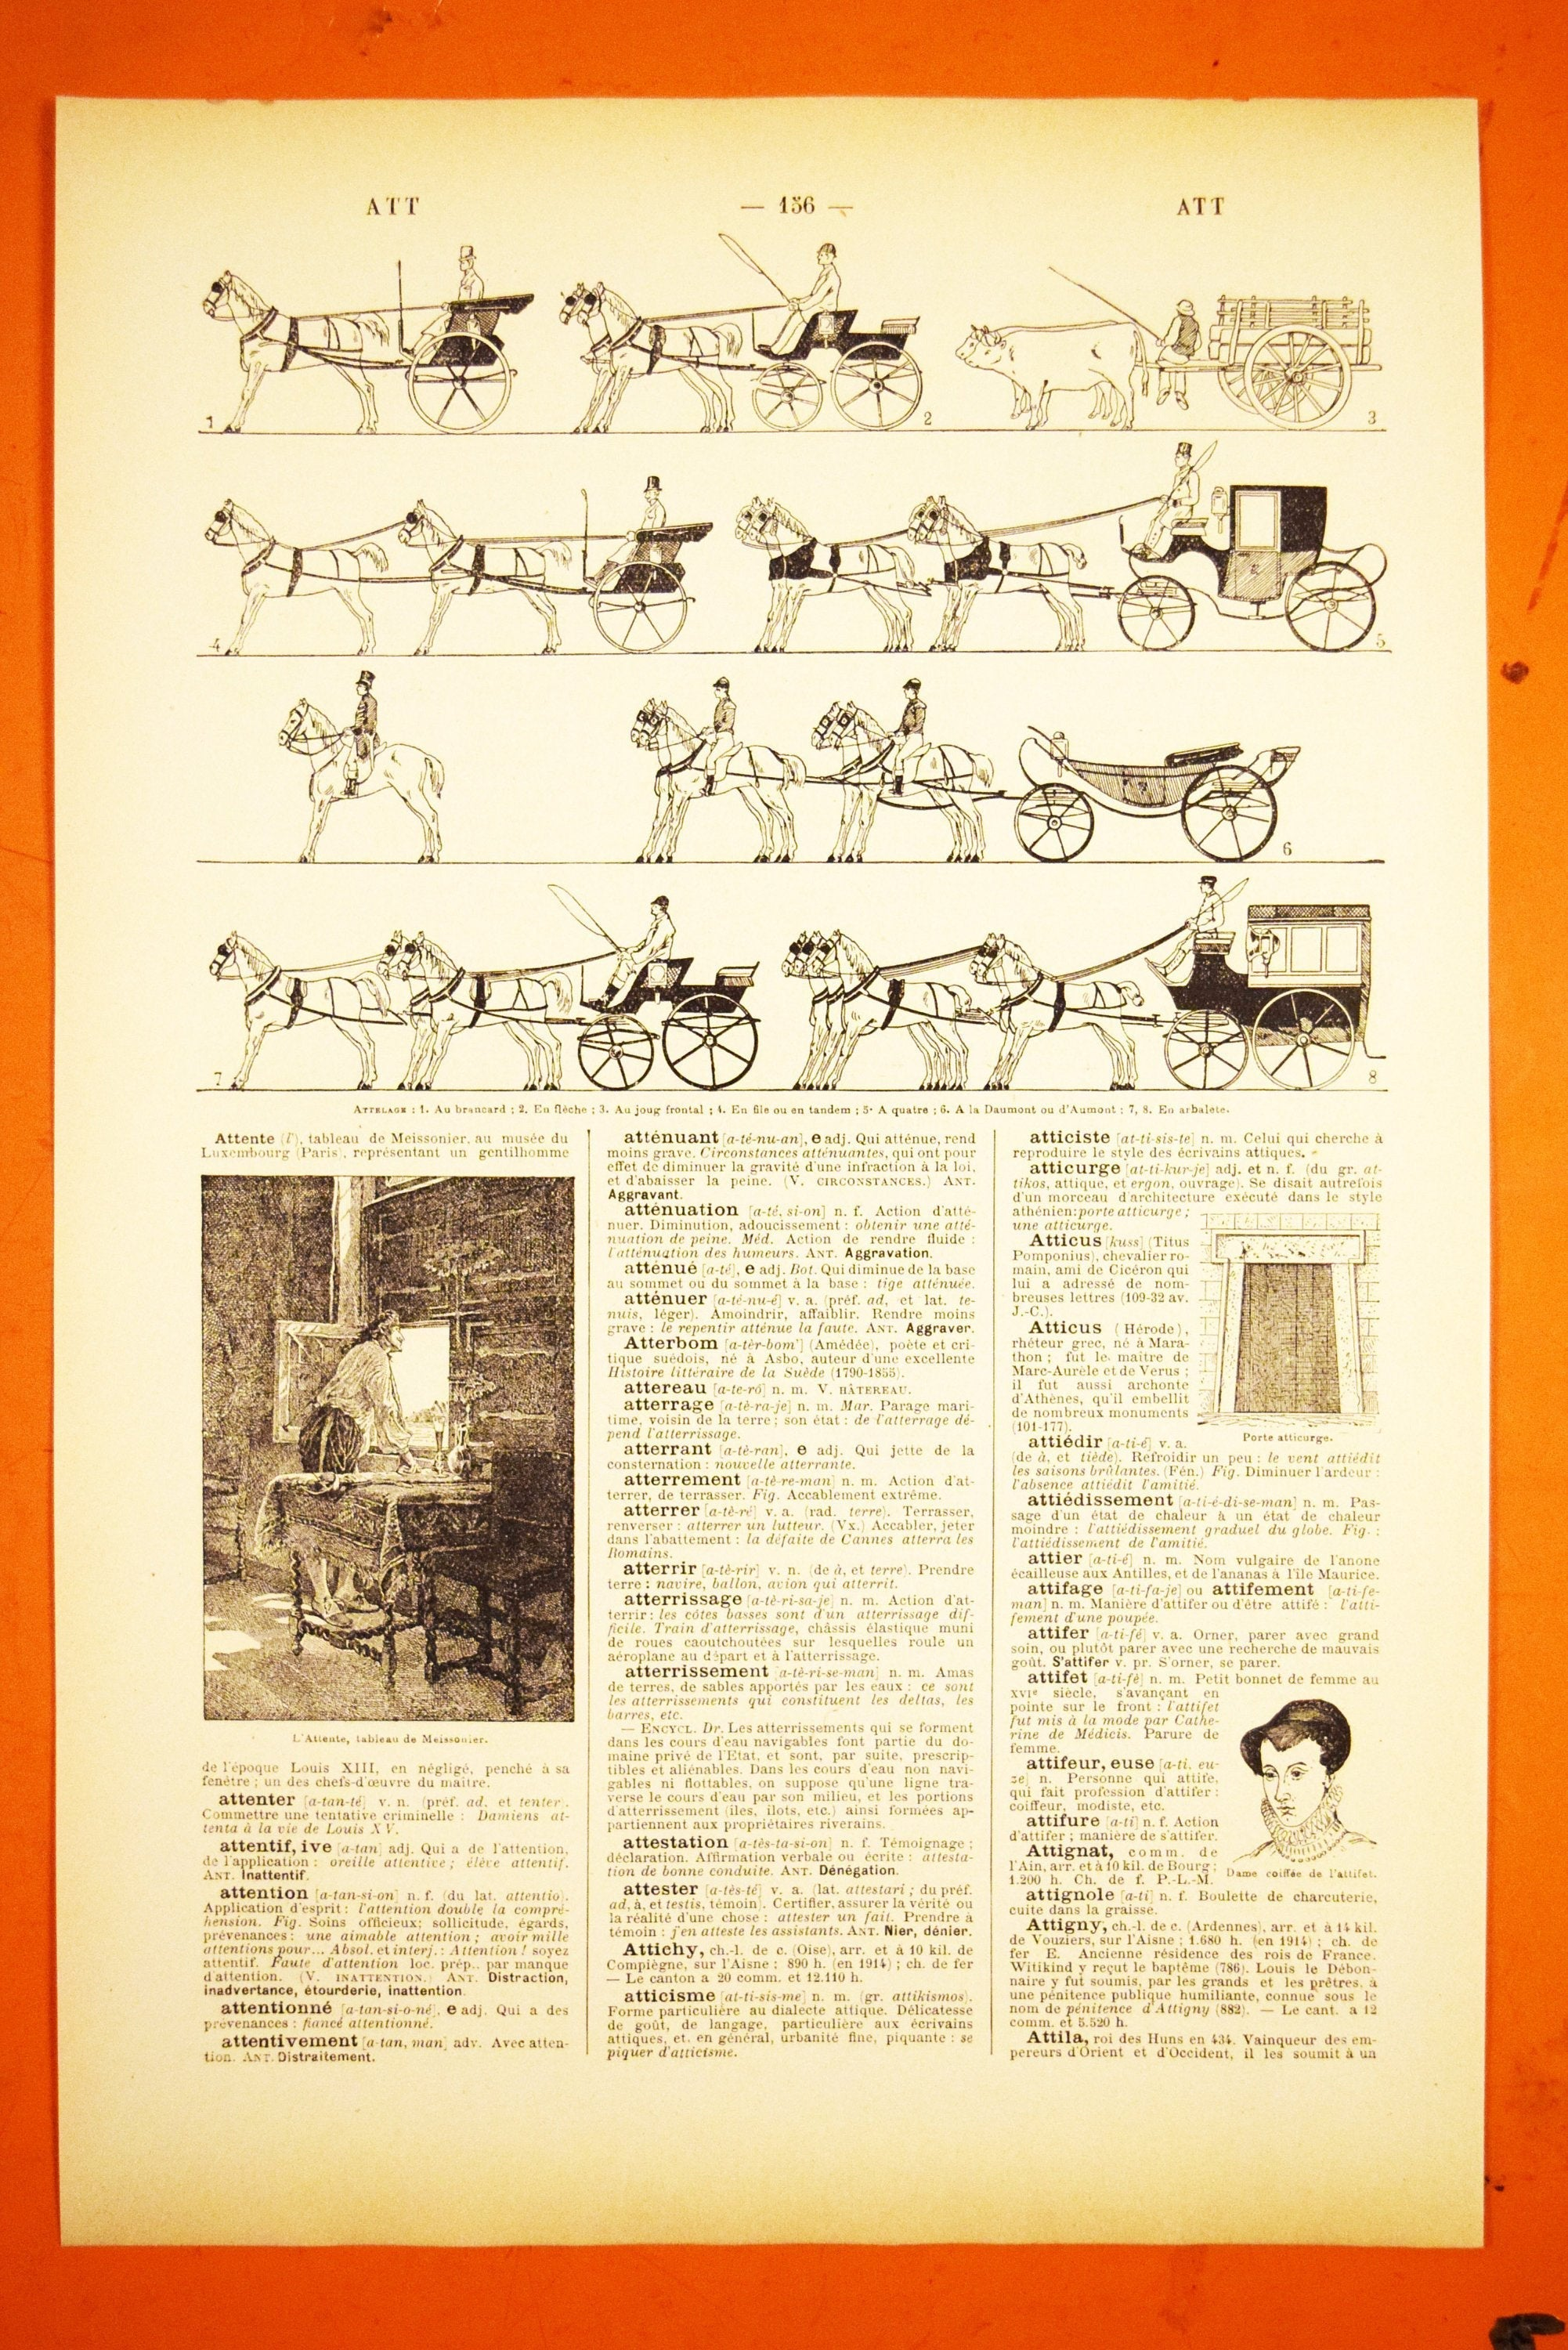 Antique Horse & Buggy Lithograph - 11.5